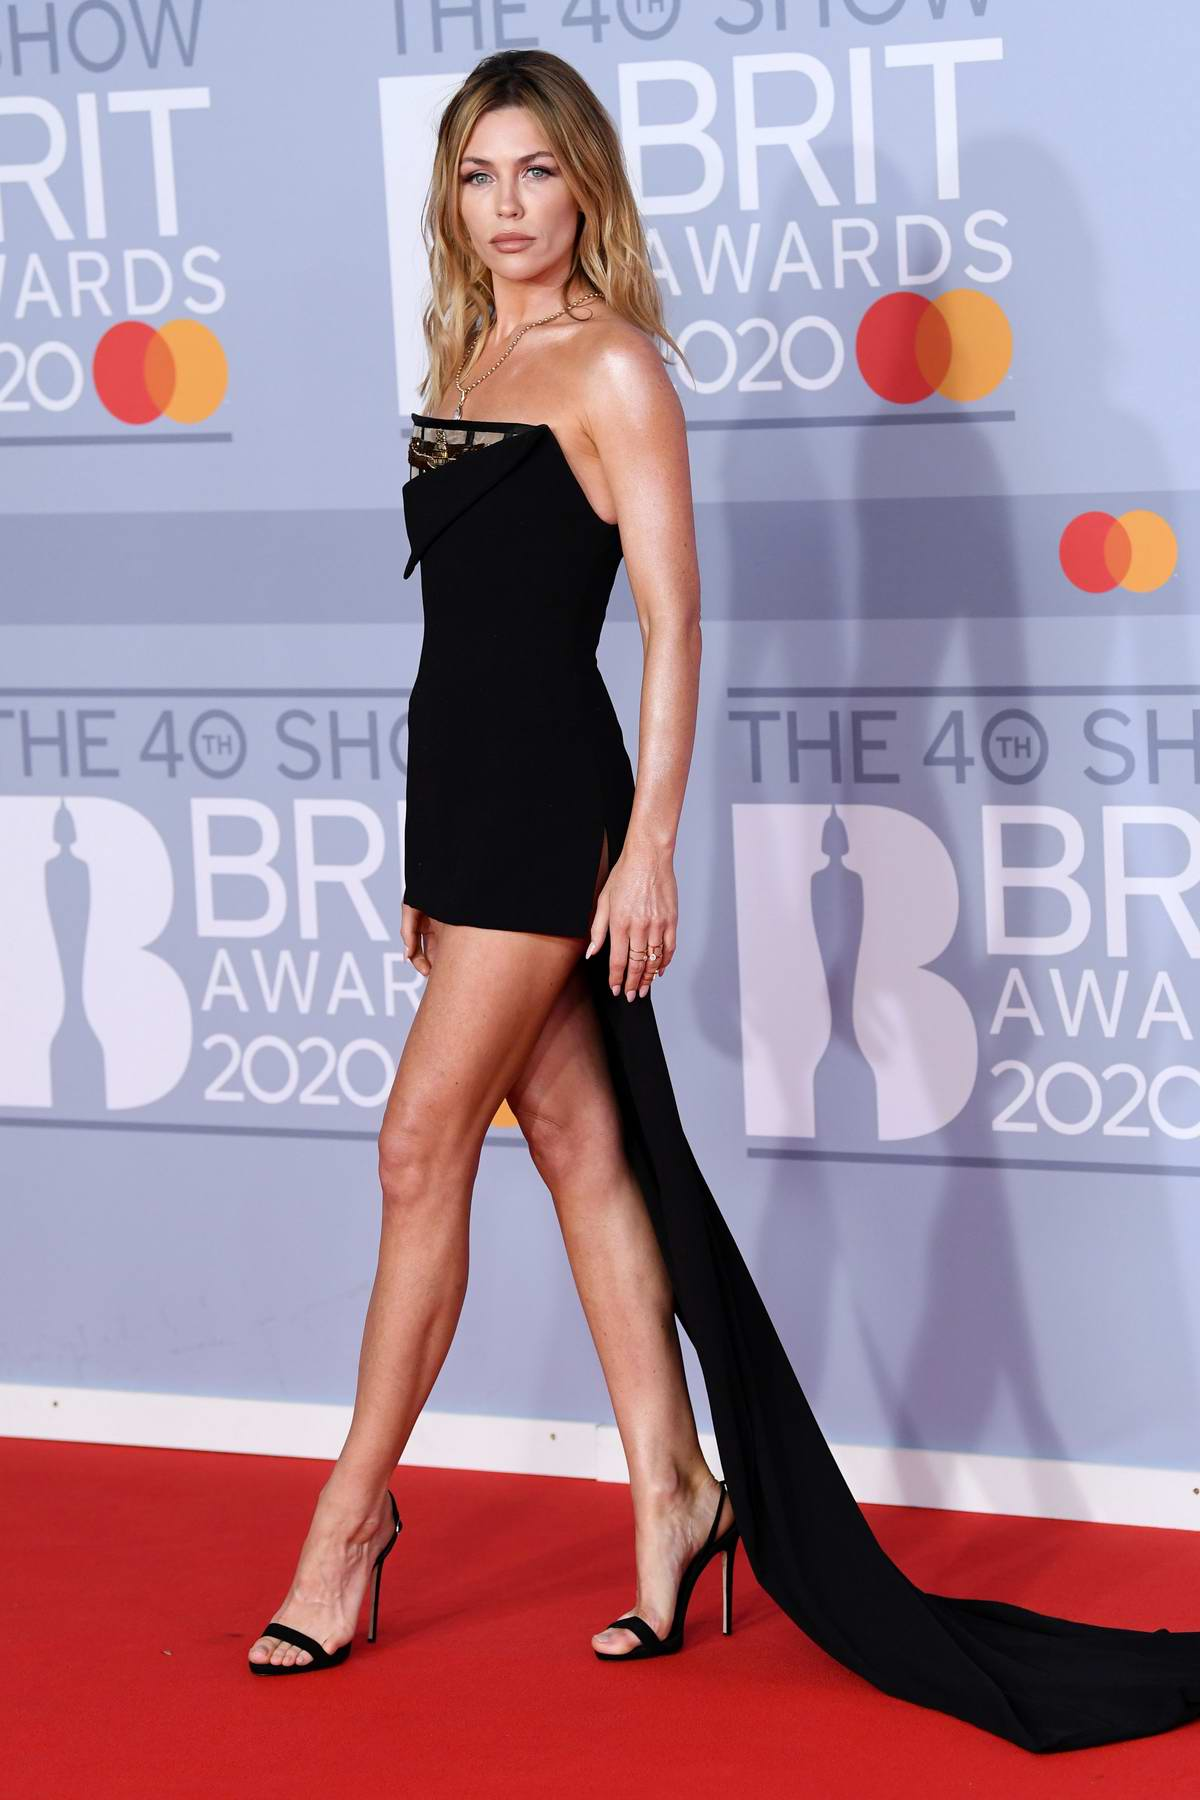 Abbey Clancy attends the BRIT Awards 2020 at The O2 Arena in London, UK